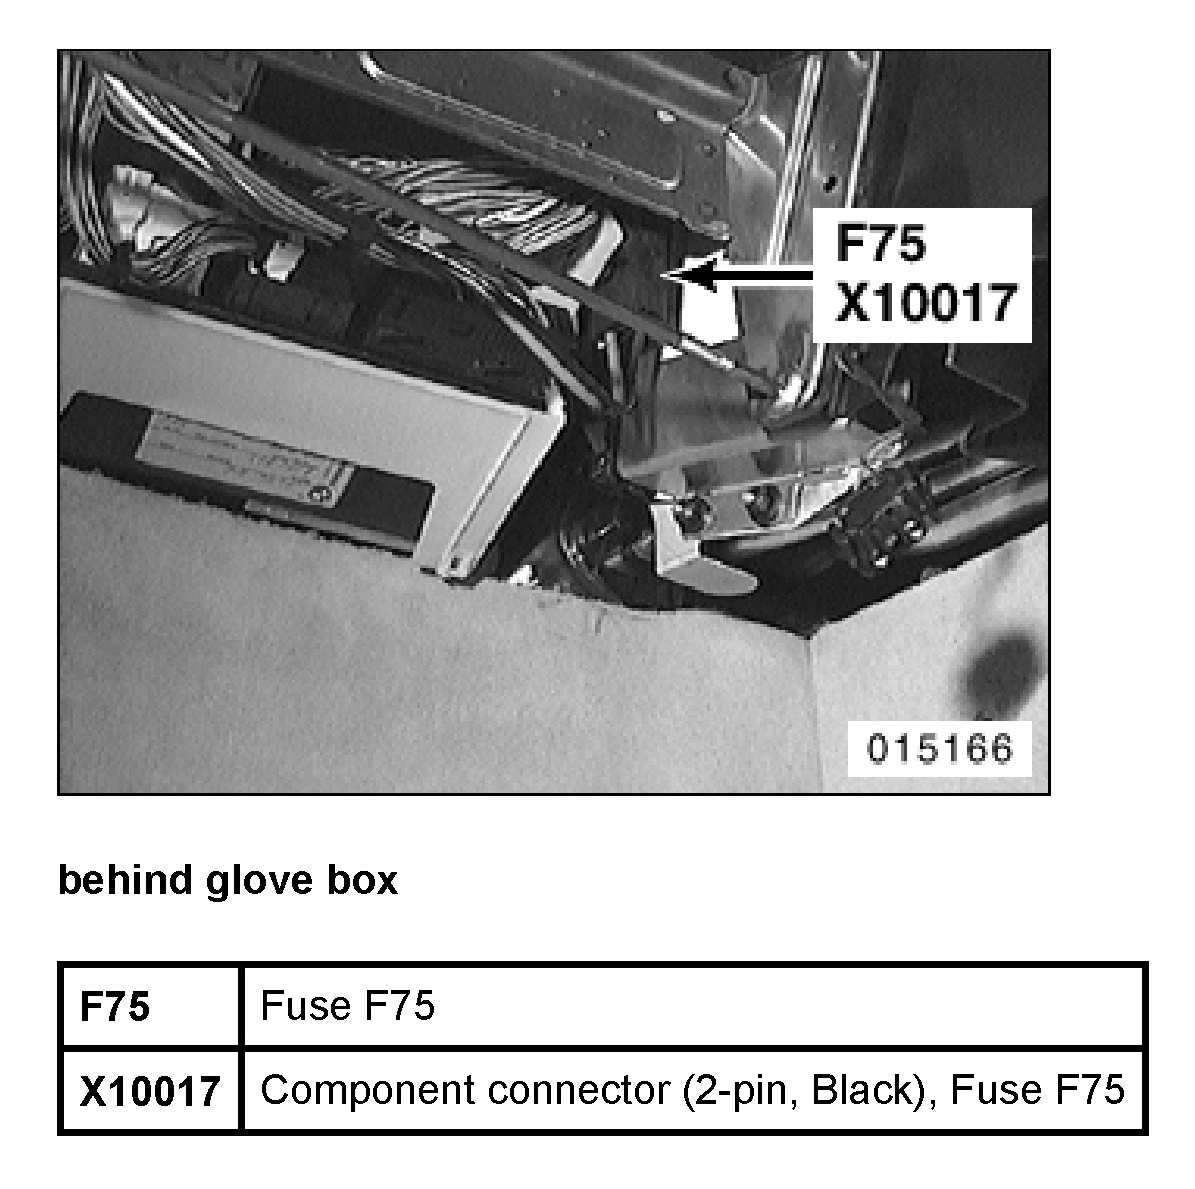 fuse box location on a 2003 bmw 2 5 schematics wiring diagrams u2022 rh parntesis co 2006 bmw x5 3.0 fuse box location 2006 bmw x5 3.0 fuse box location